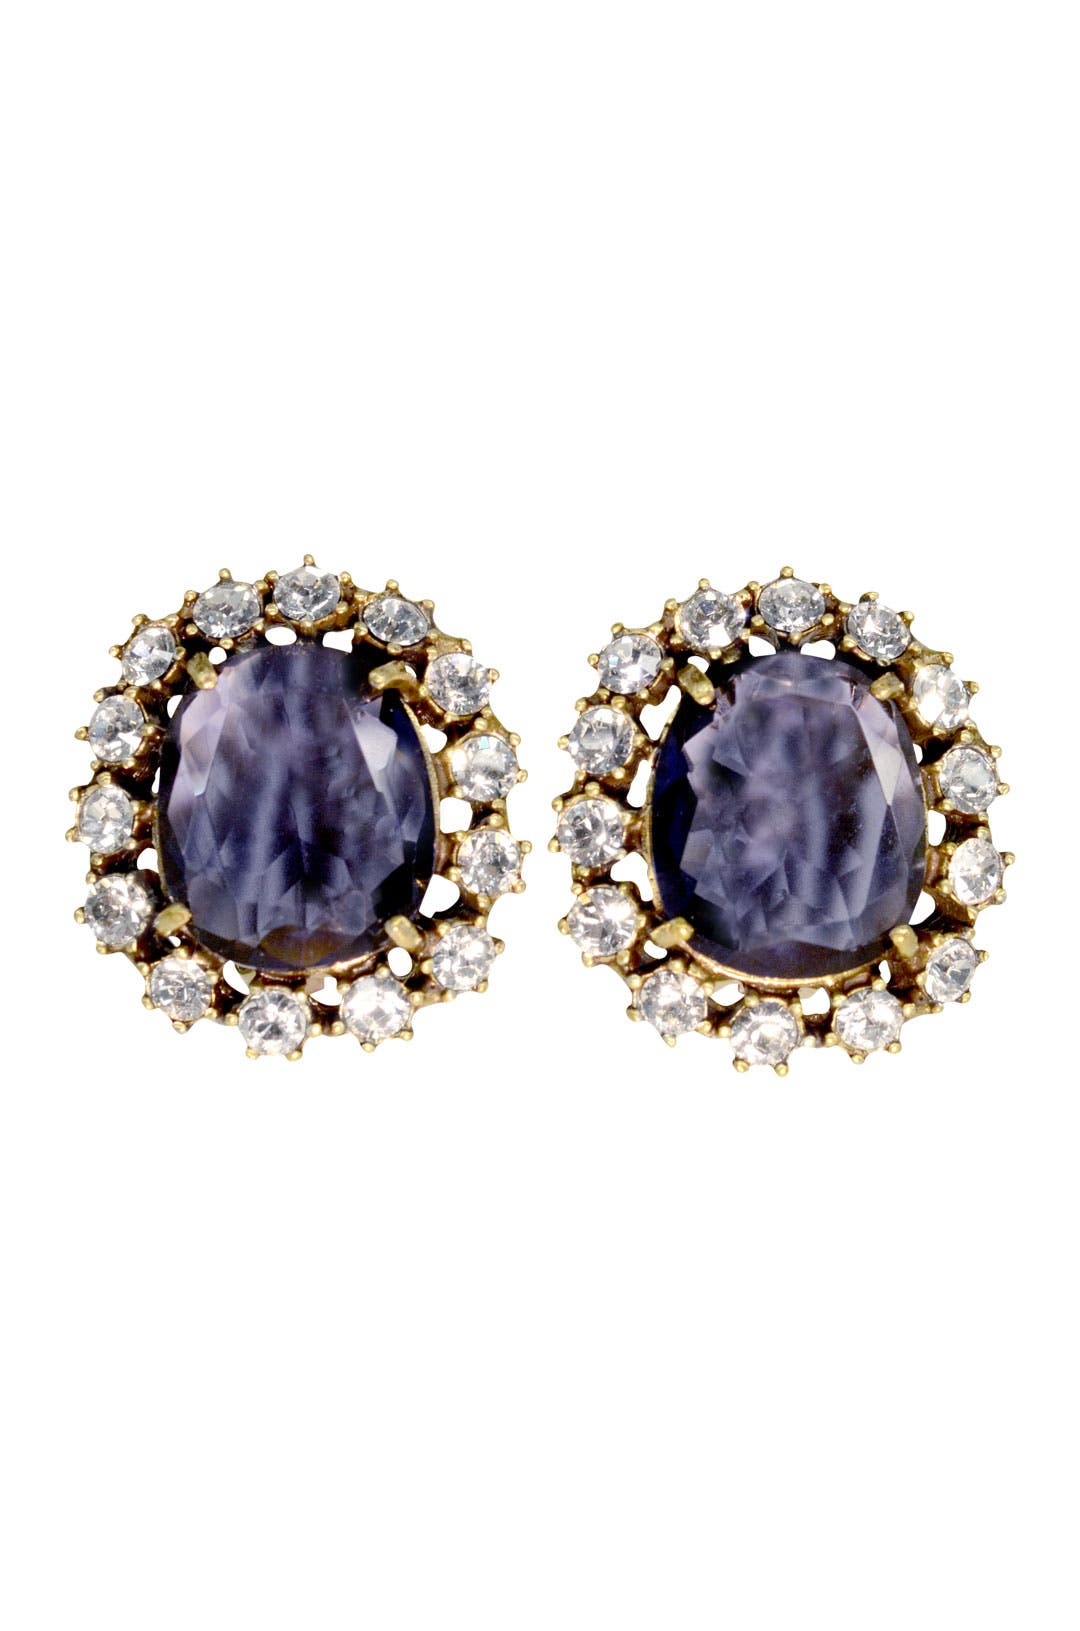 Regal Amethyst Earrings by Gerard Yosca